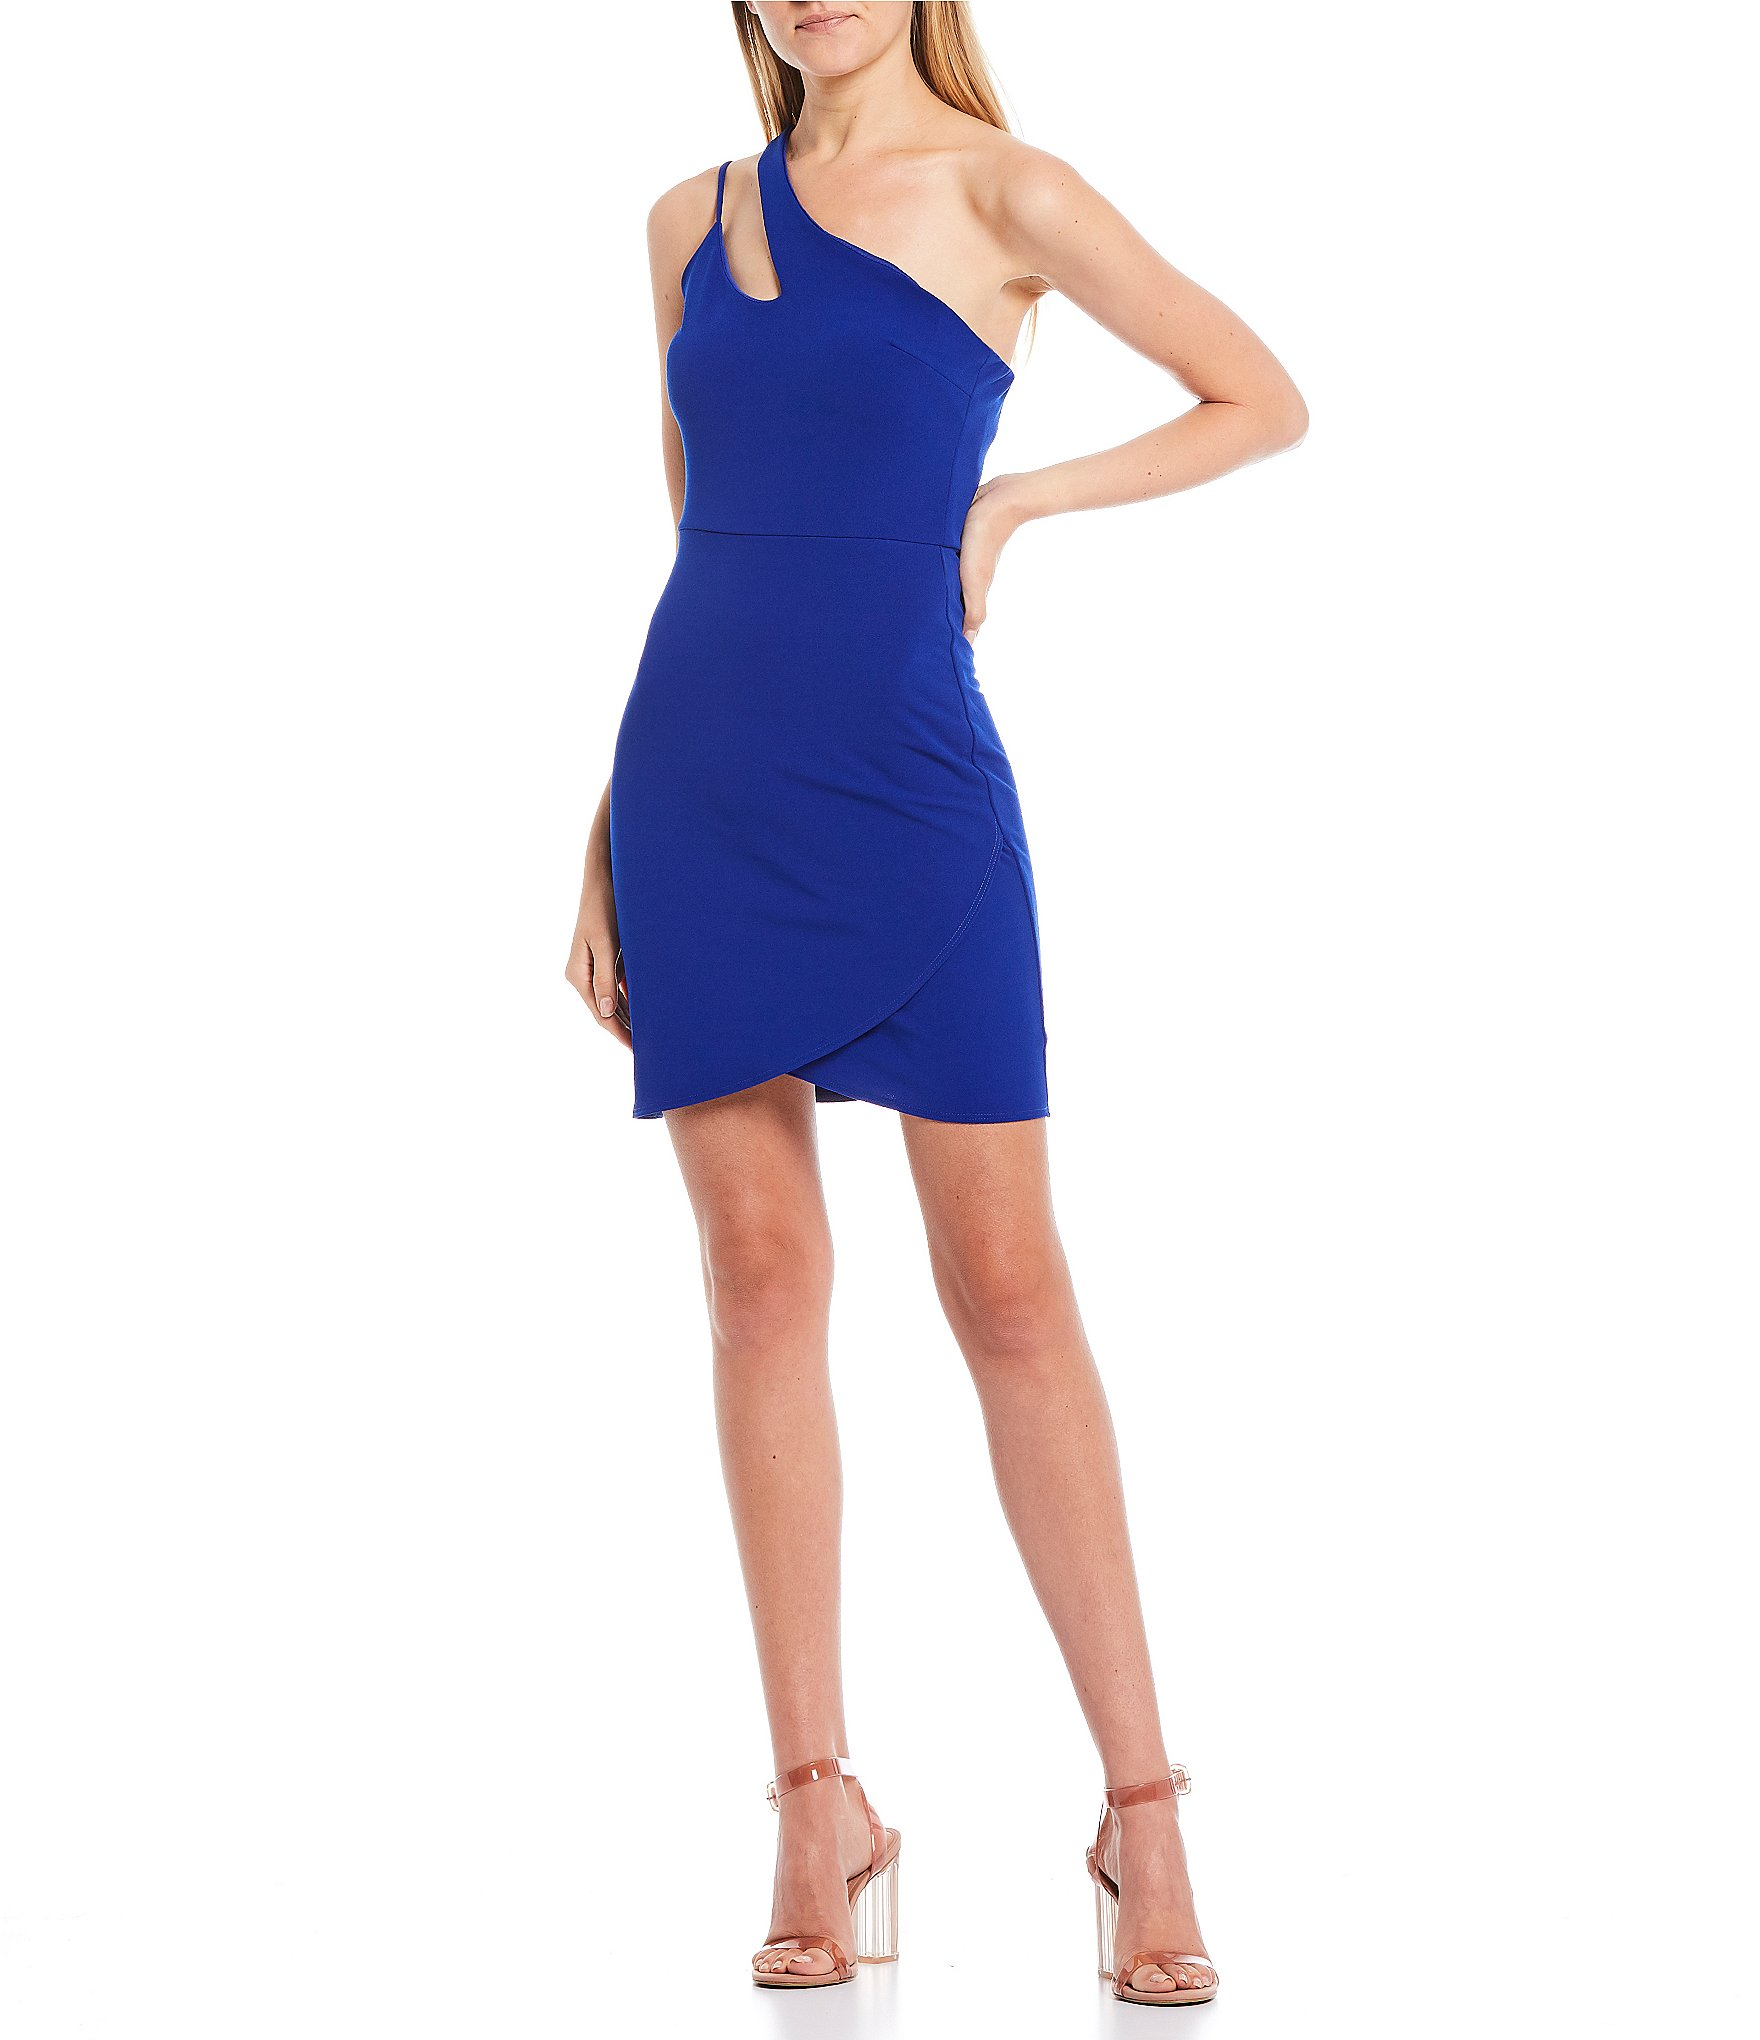 Womens One Shoudler Strapped Bodycon Dress